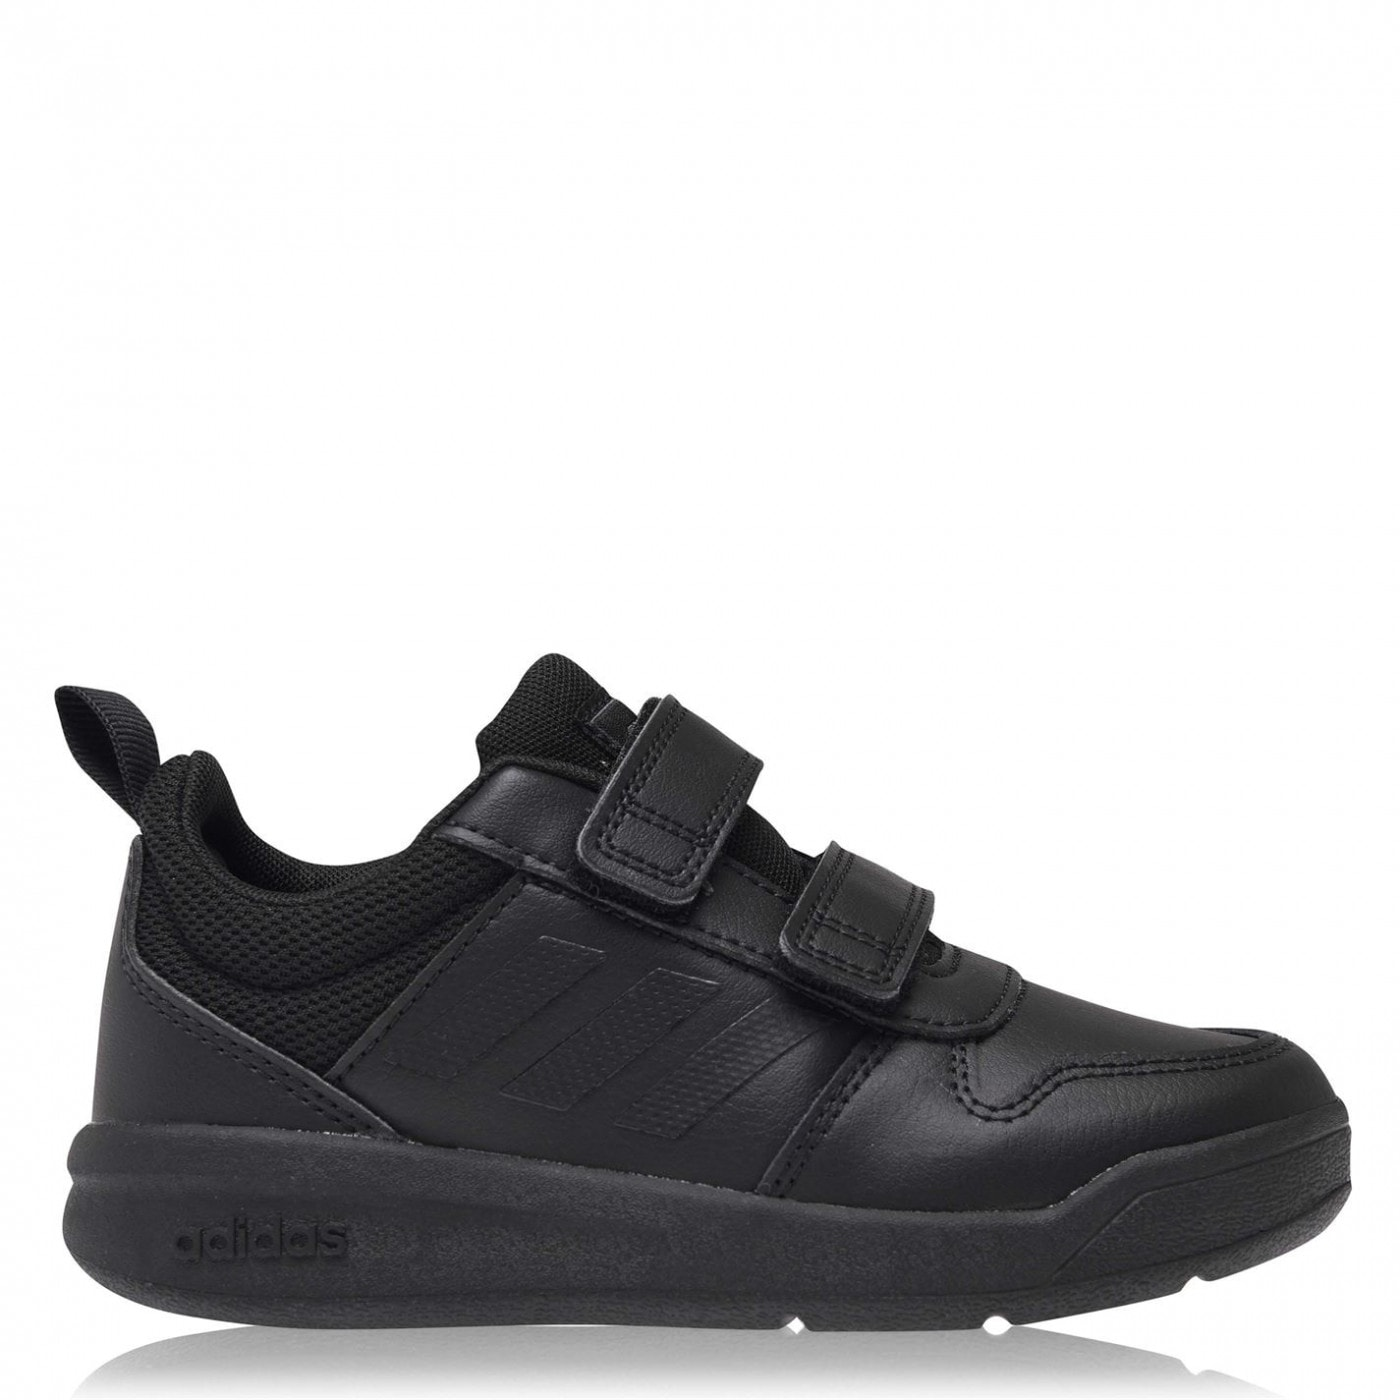 Adidas Tensaur CF Child Boys Trainers